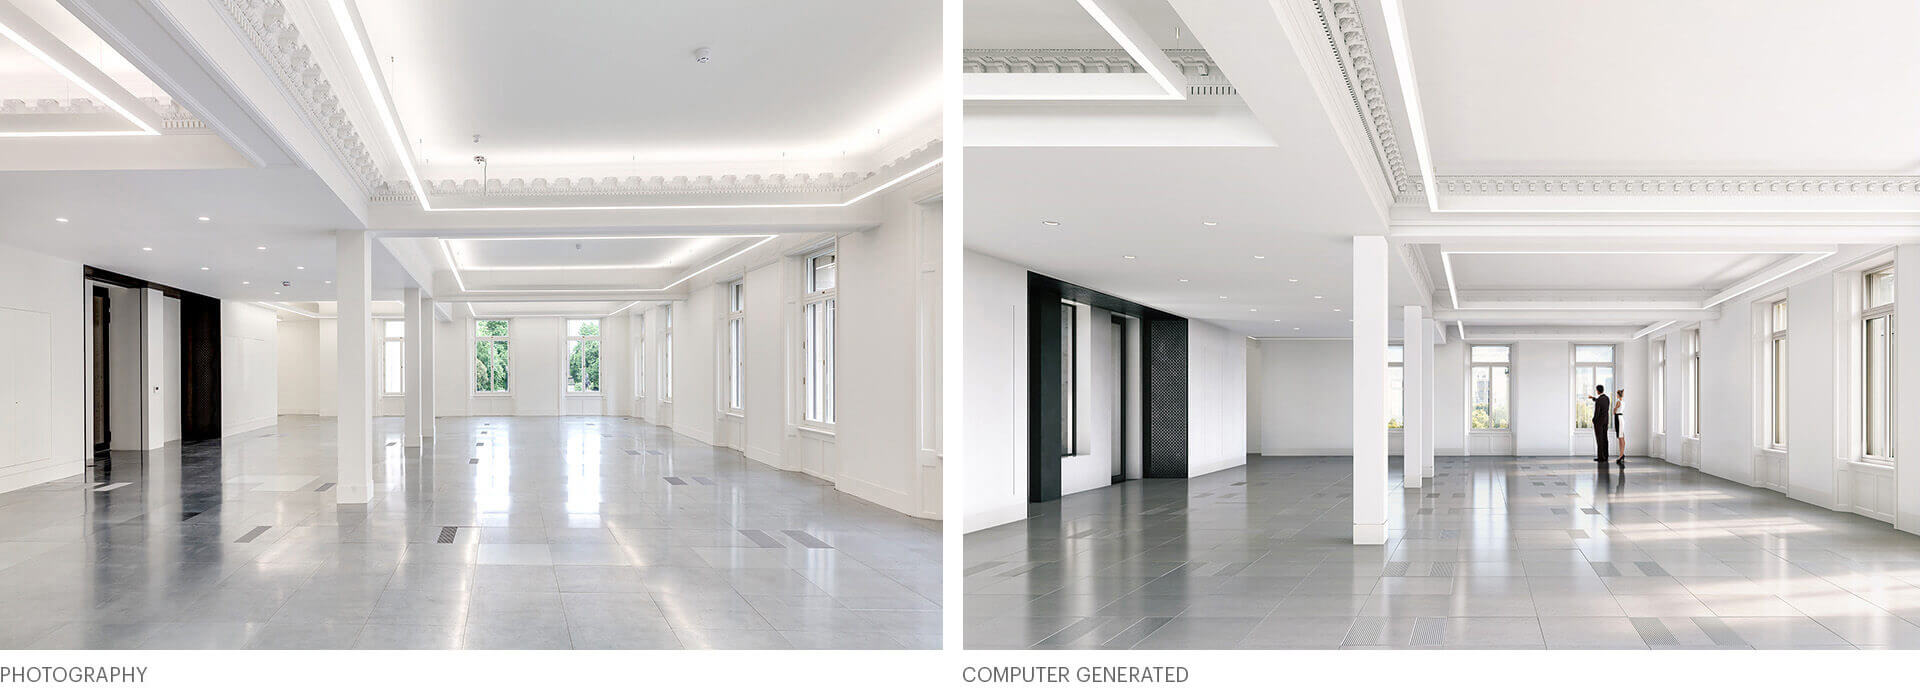 Waterloo Place, before and after architectural visualisation